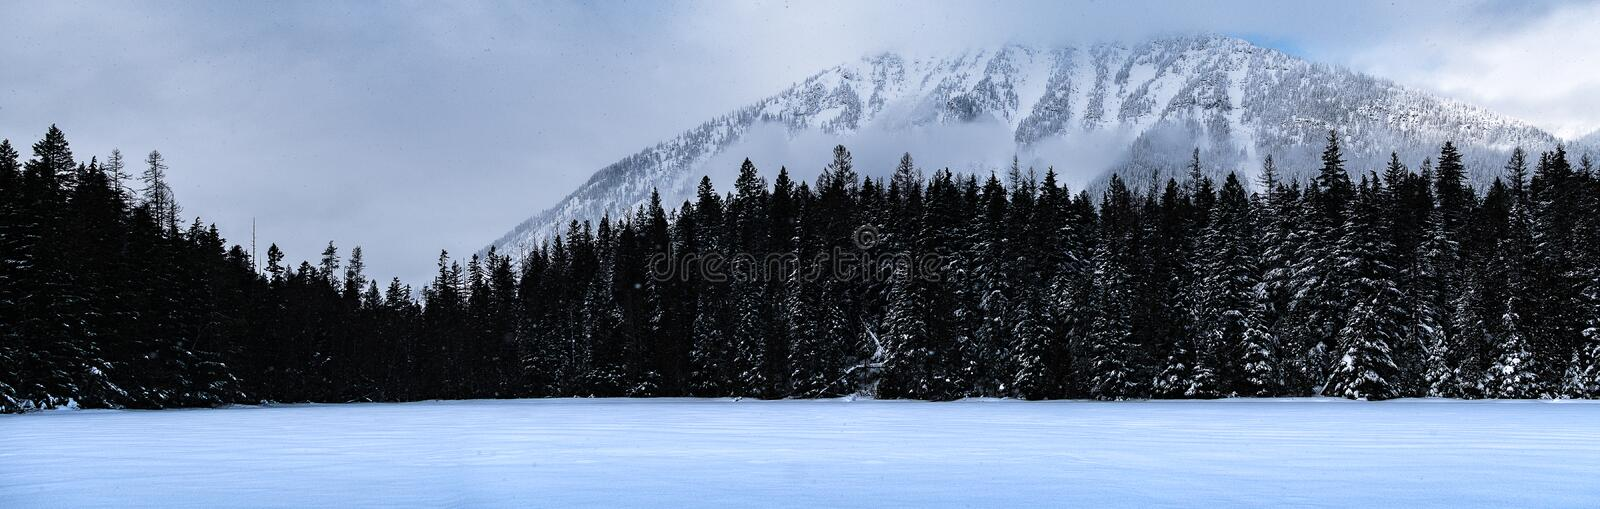 Glacier National Park Snowing in Winter royalty free stock photos